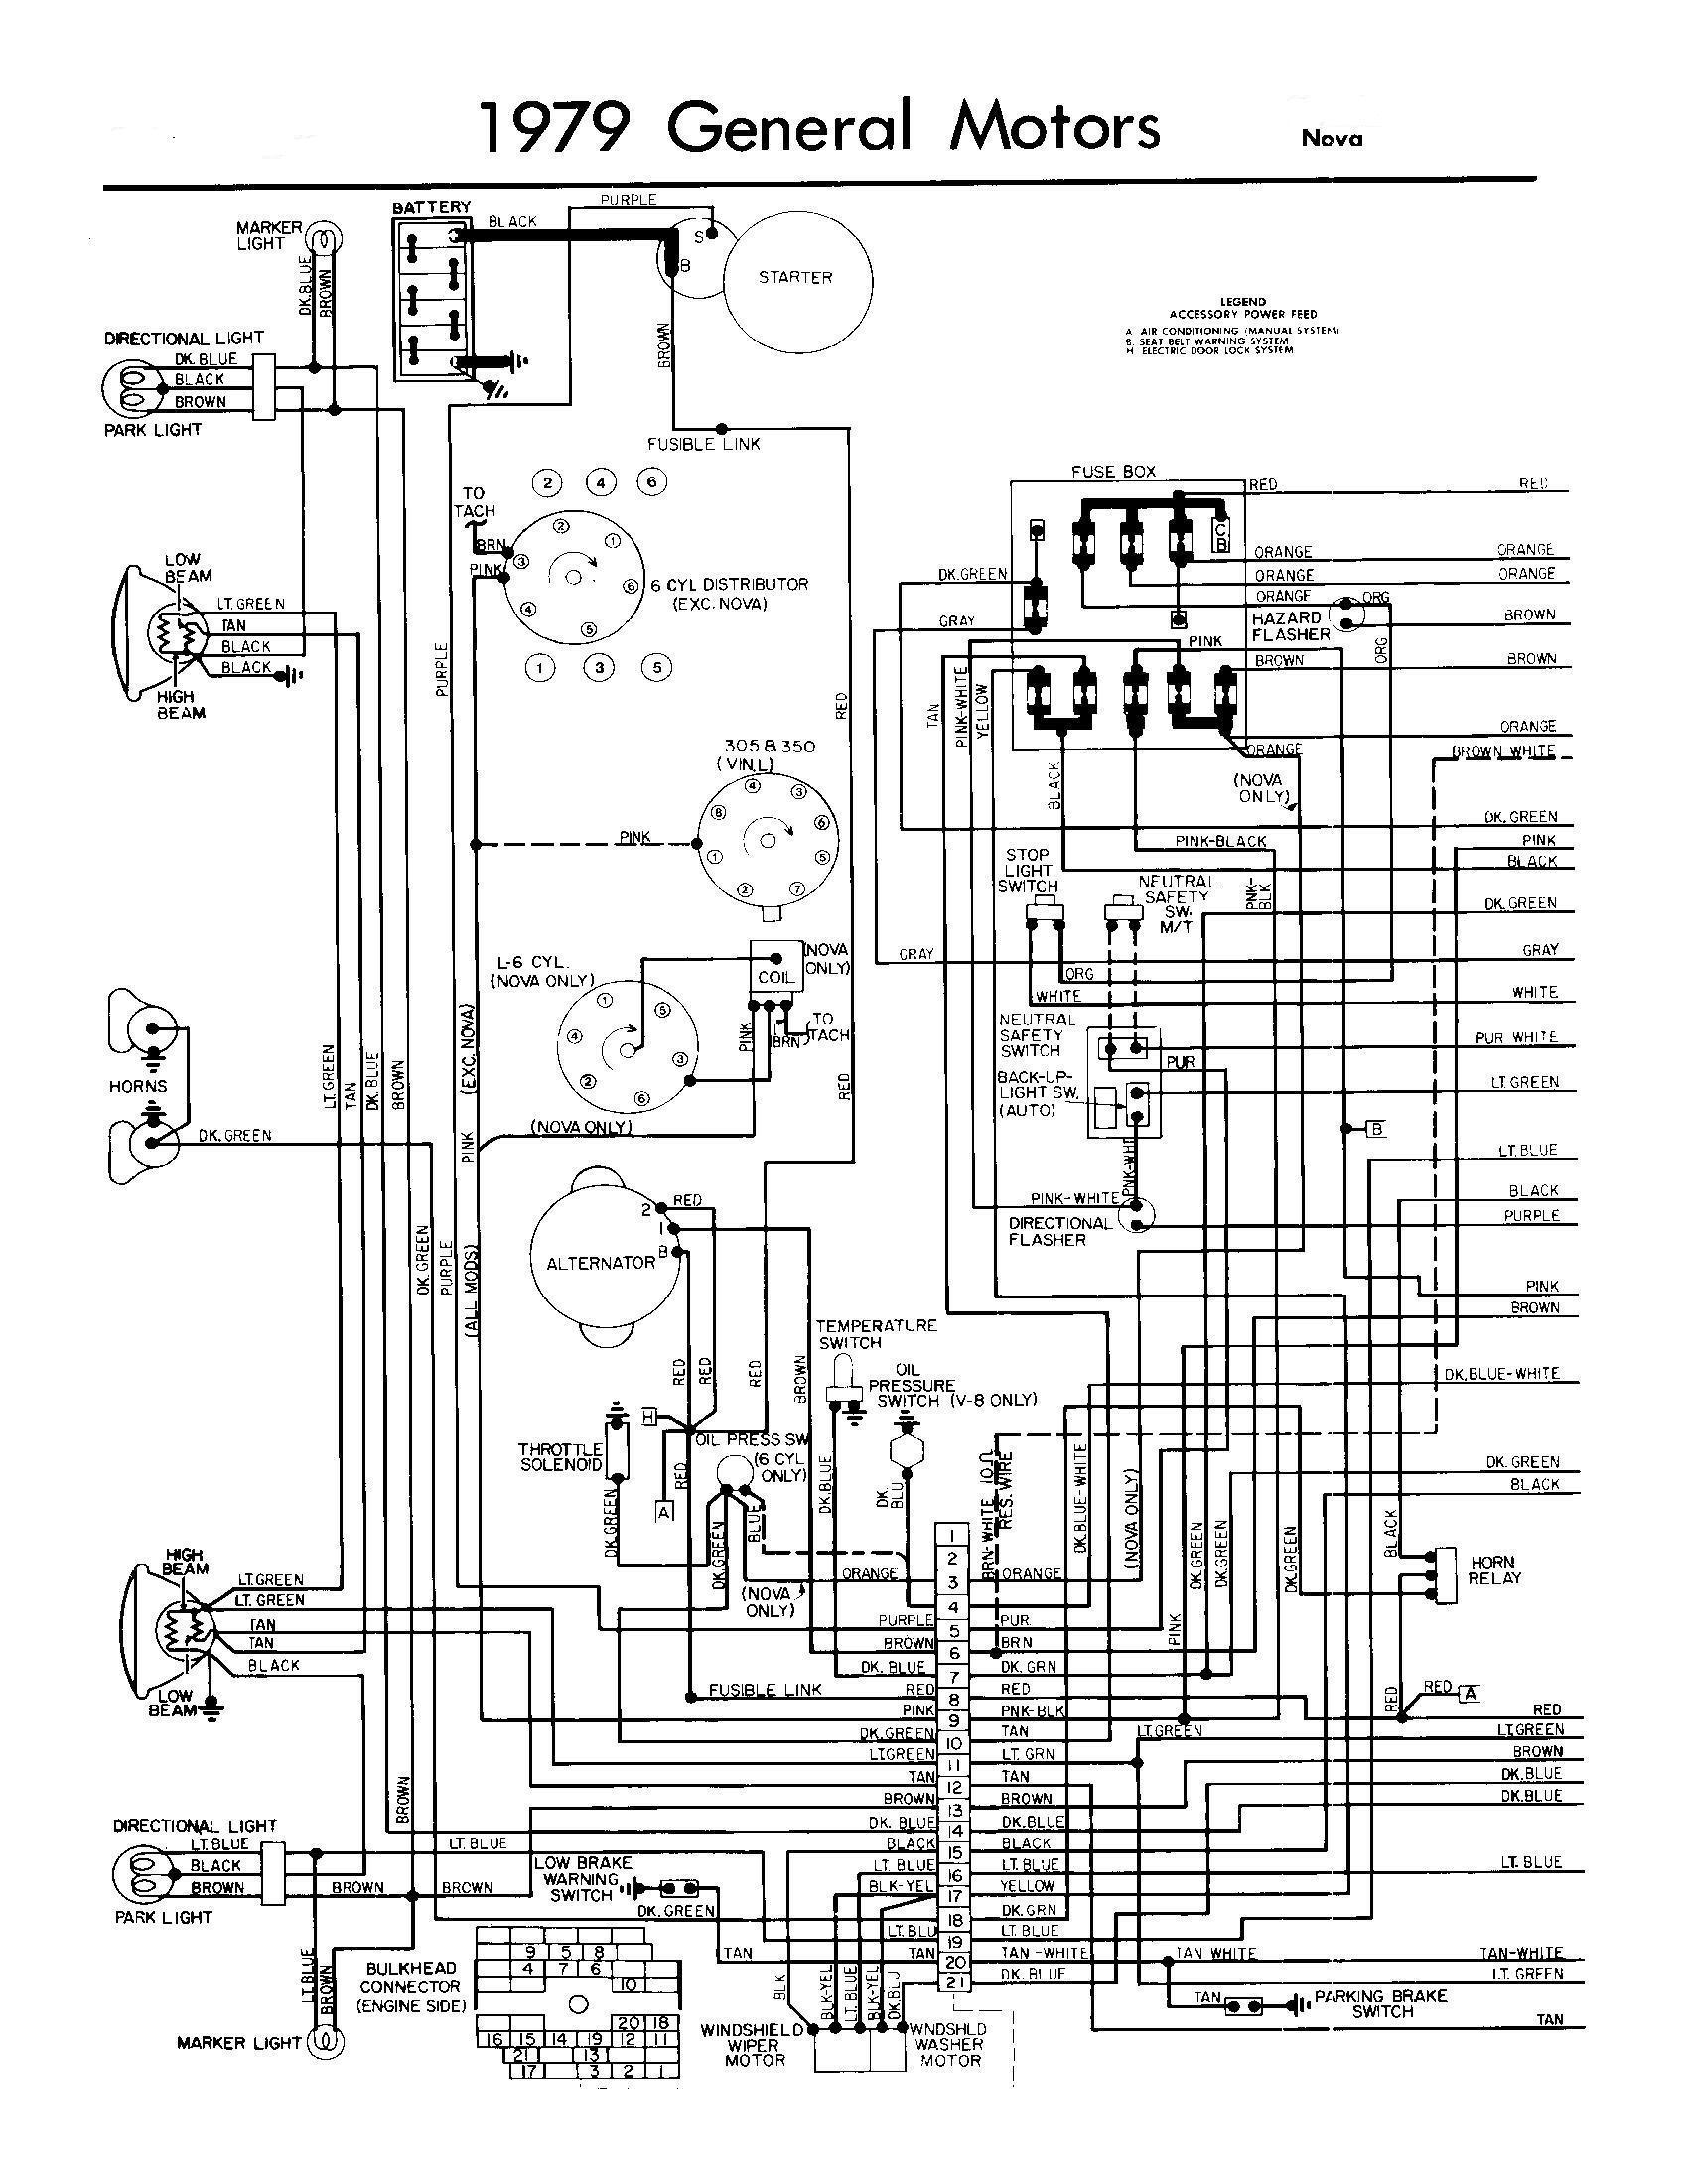 Wiring Diagram For Reversing Single Phase Motor Electrical together with 67 Dodge A100 Wiring Diagram together with 2008 F350 Fuse Panel Diagram moreover Dodge Fusible Link Location in addition P 0996b43f80394f05. on mopar wiring harness